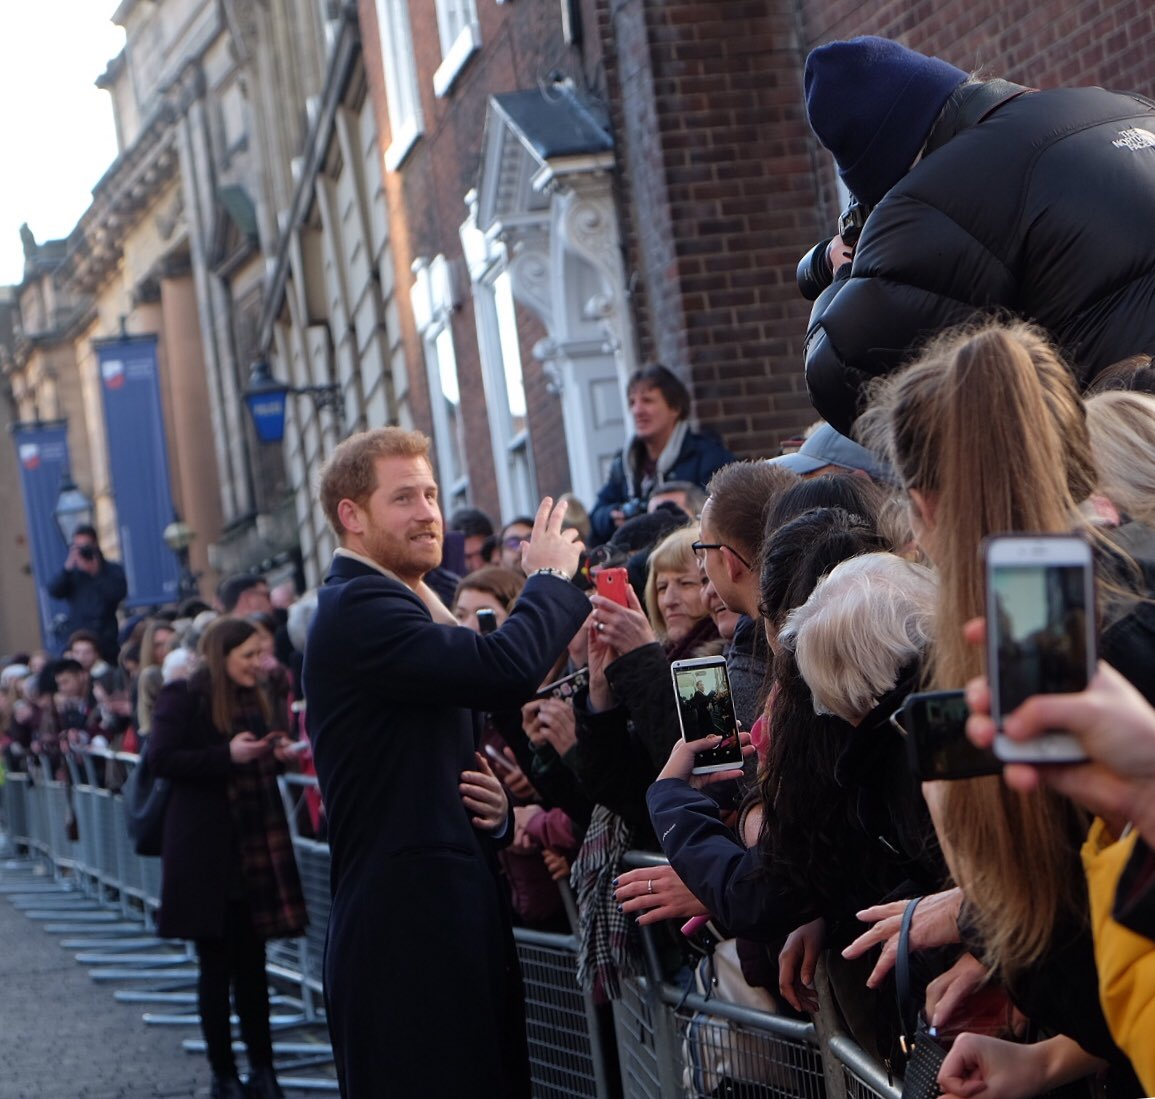 The world is on fire, but at least Harry and Meghan are loved-up in their first public engagement